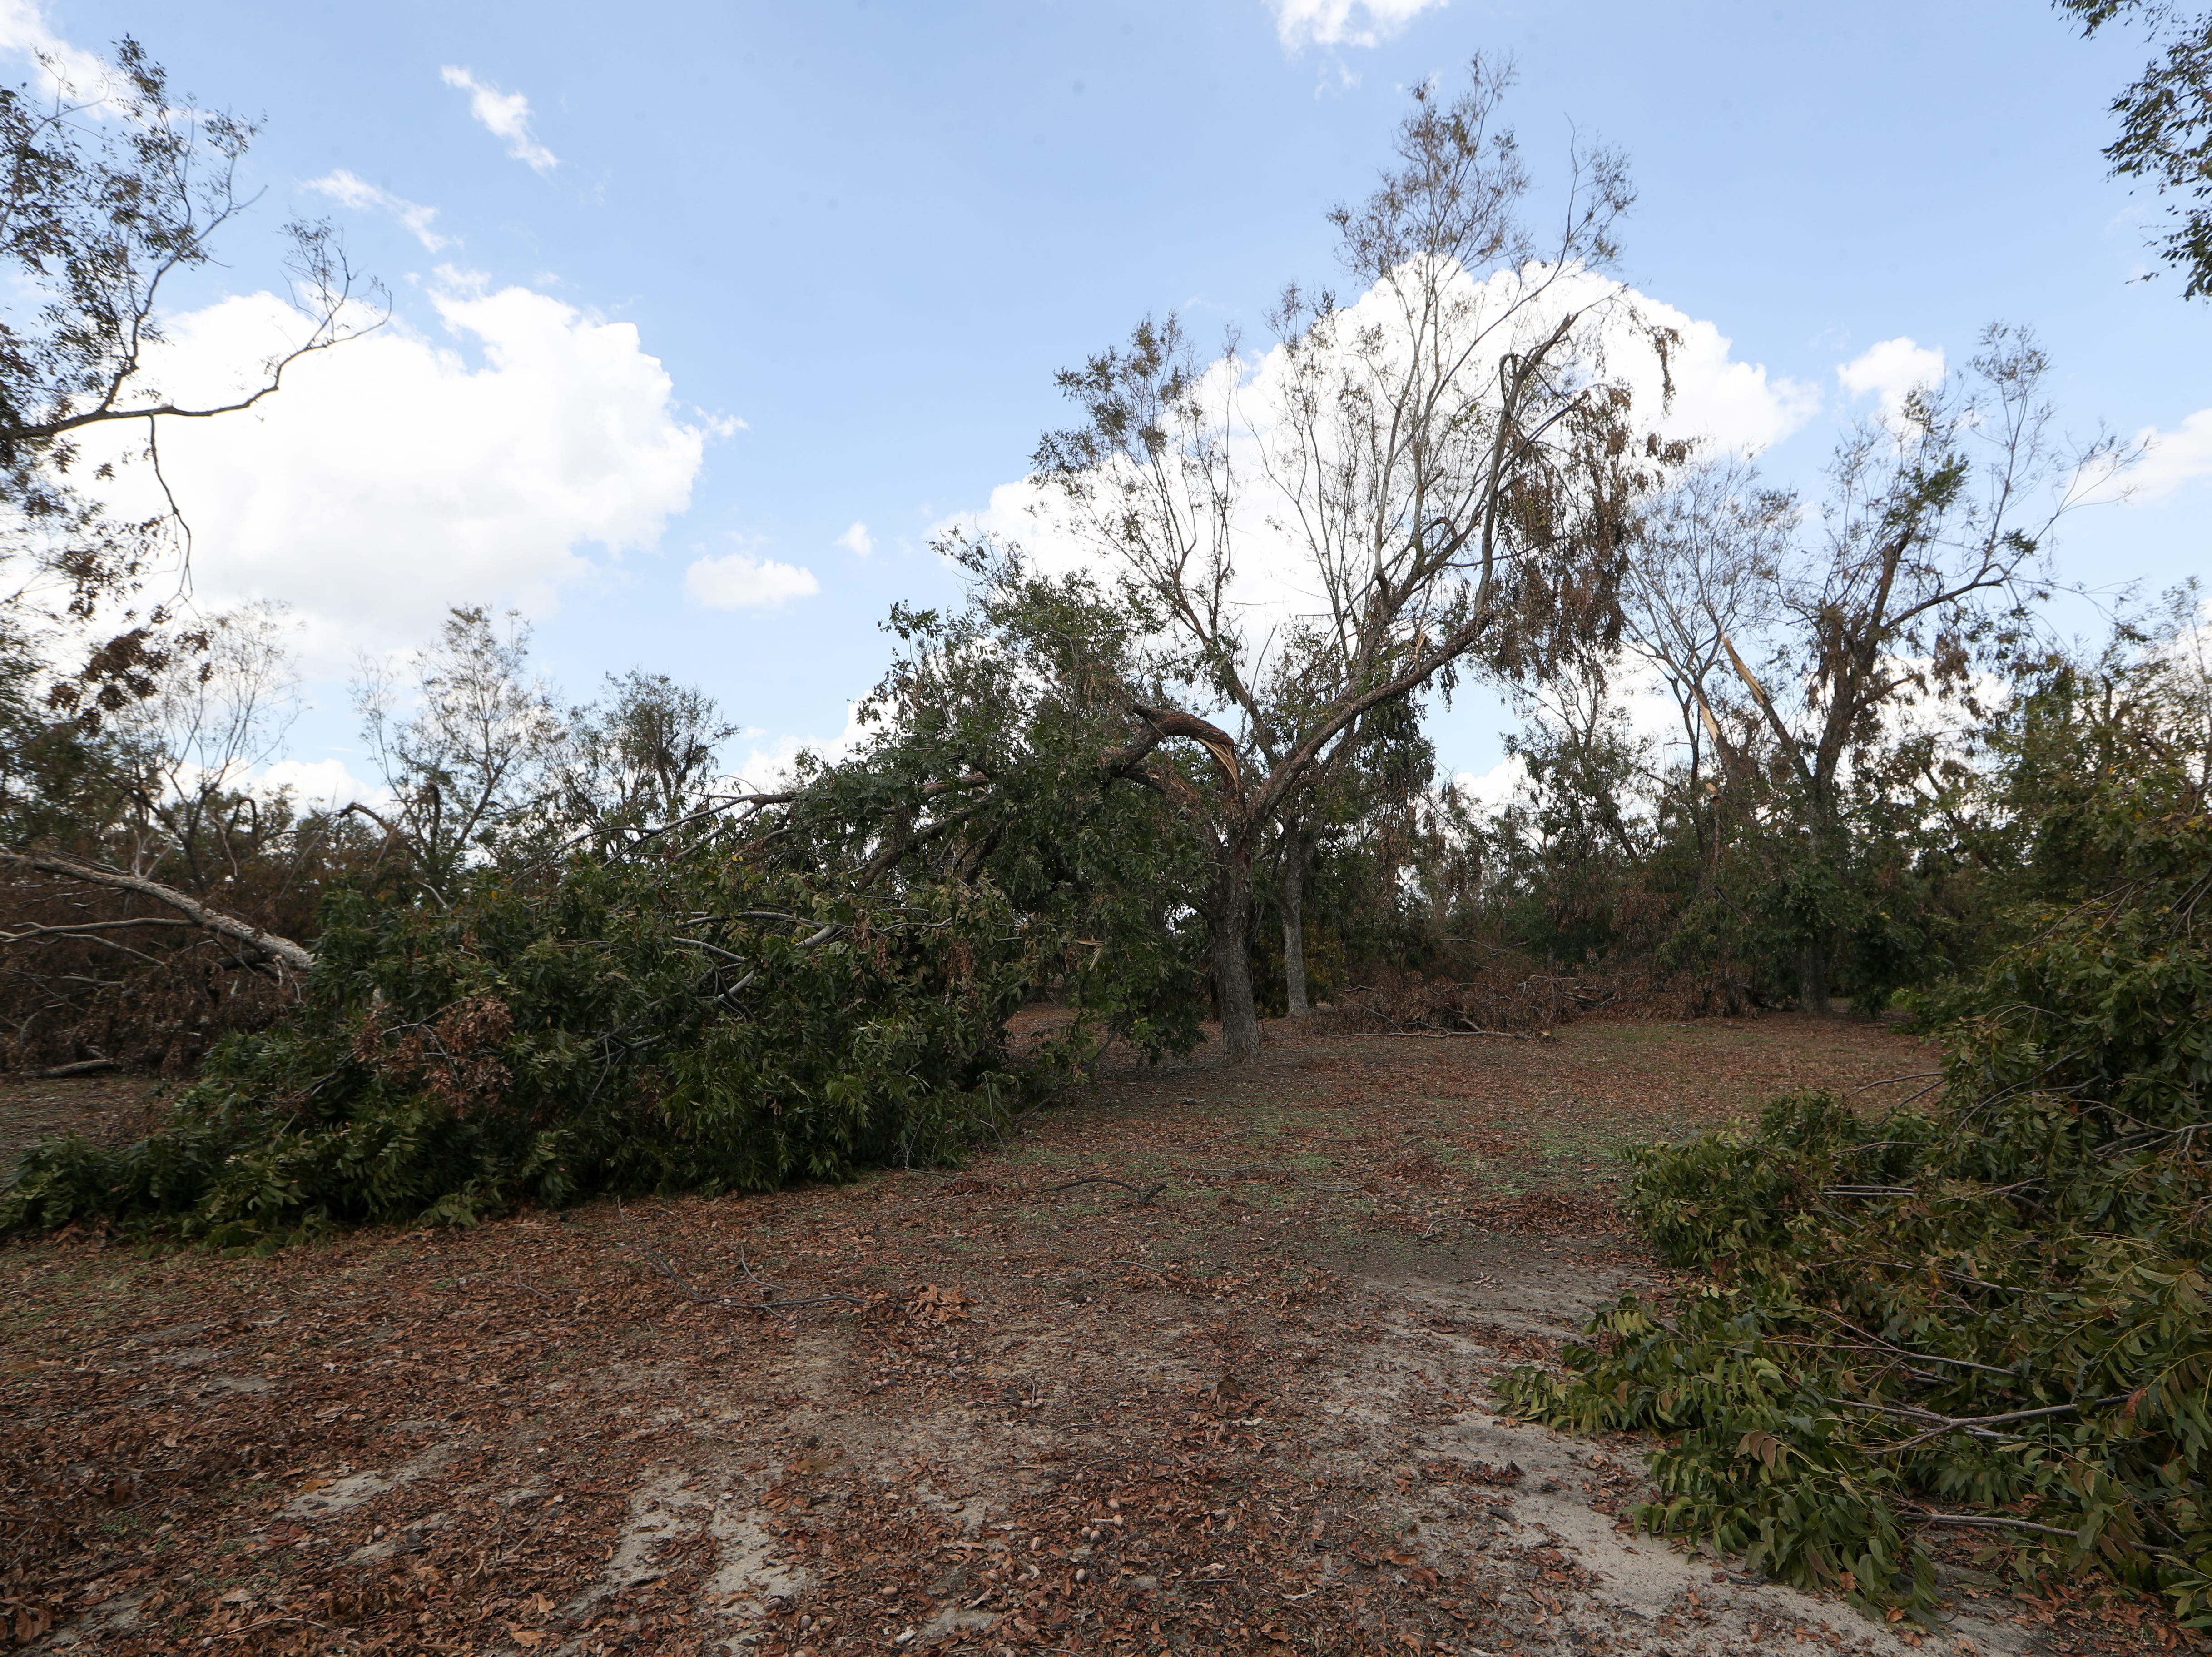 Pecan orchards on Seldom Rest Farm in Donalsonville, Ga. are destroyed in the aftermath of Hurricane Michael Wednesday, Oct. 17, 2018.